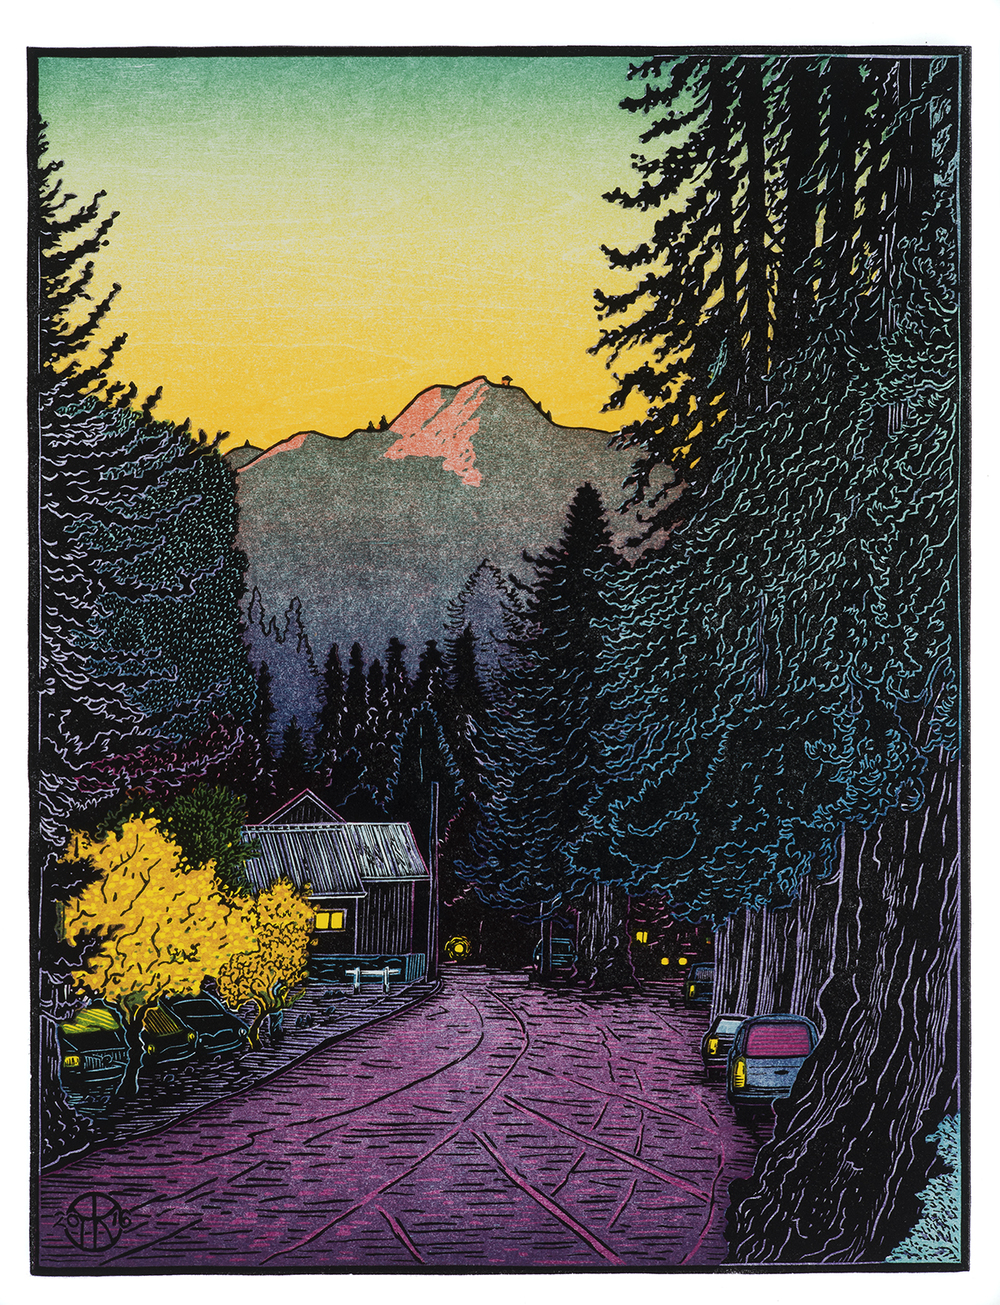 """""""Mill Valley Lumber"""": 8 color-layer multi-block reduction cut completed spring 2016. The scene is on Miller Ave. in Mill Valley, looking towards the old Lumber Company buildings with Mt. Tamalpais catching the evening light in late November. This image was used for the Mill Valley Fall Art Festival's 60th Anniversary poster in 2016."""